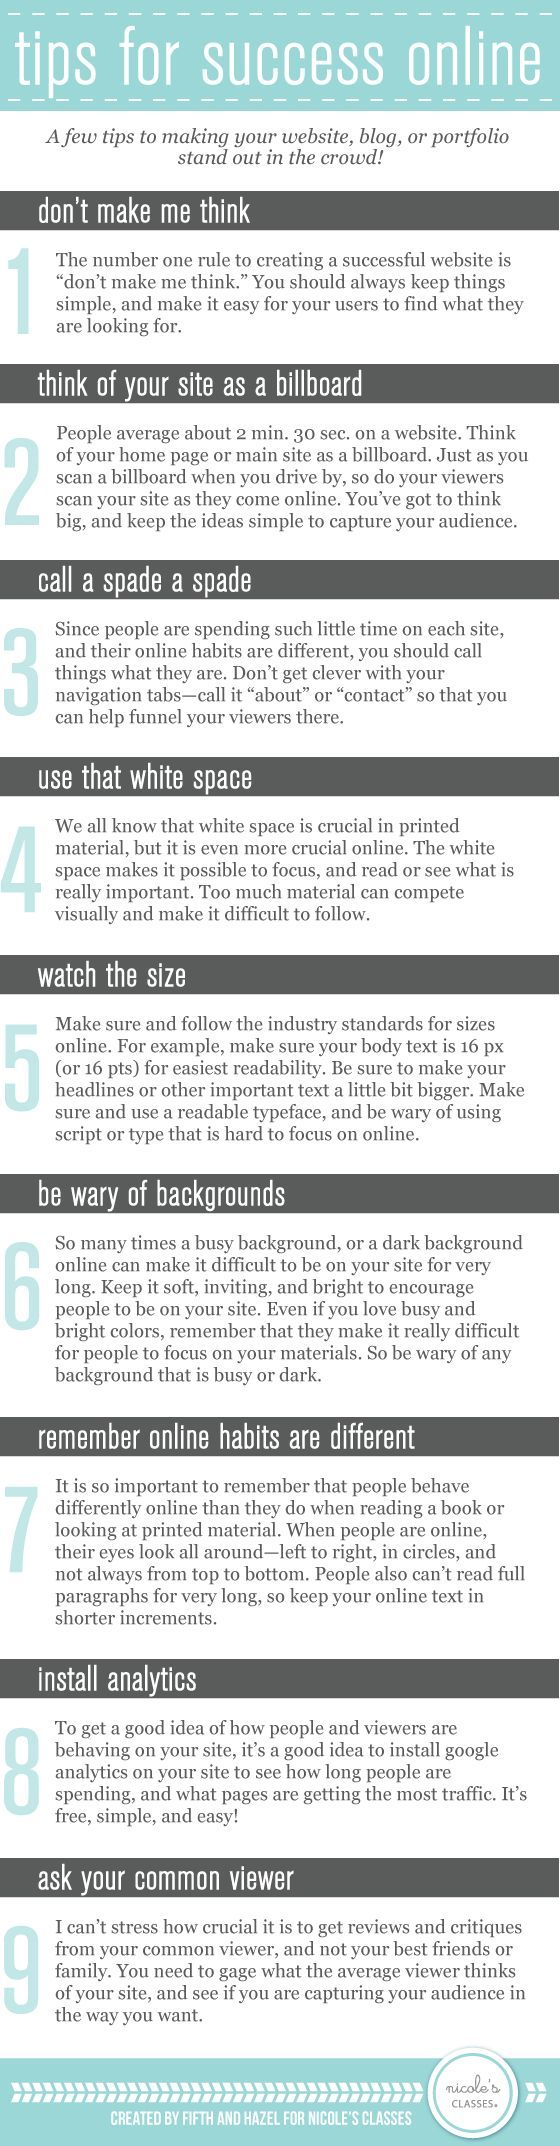 10 Tips to Making Your Website and Portfolio Stand Out in the Crowd | #webdesign #portfolio #infographic